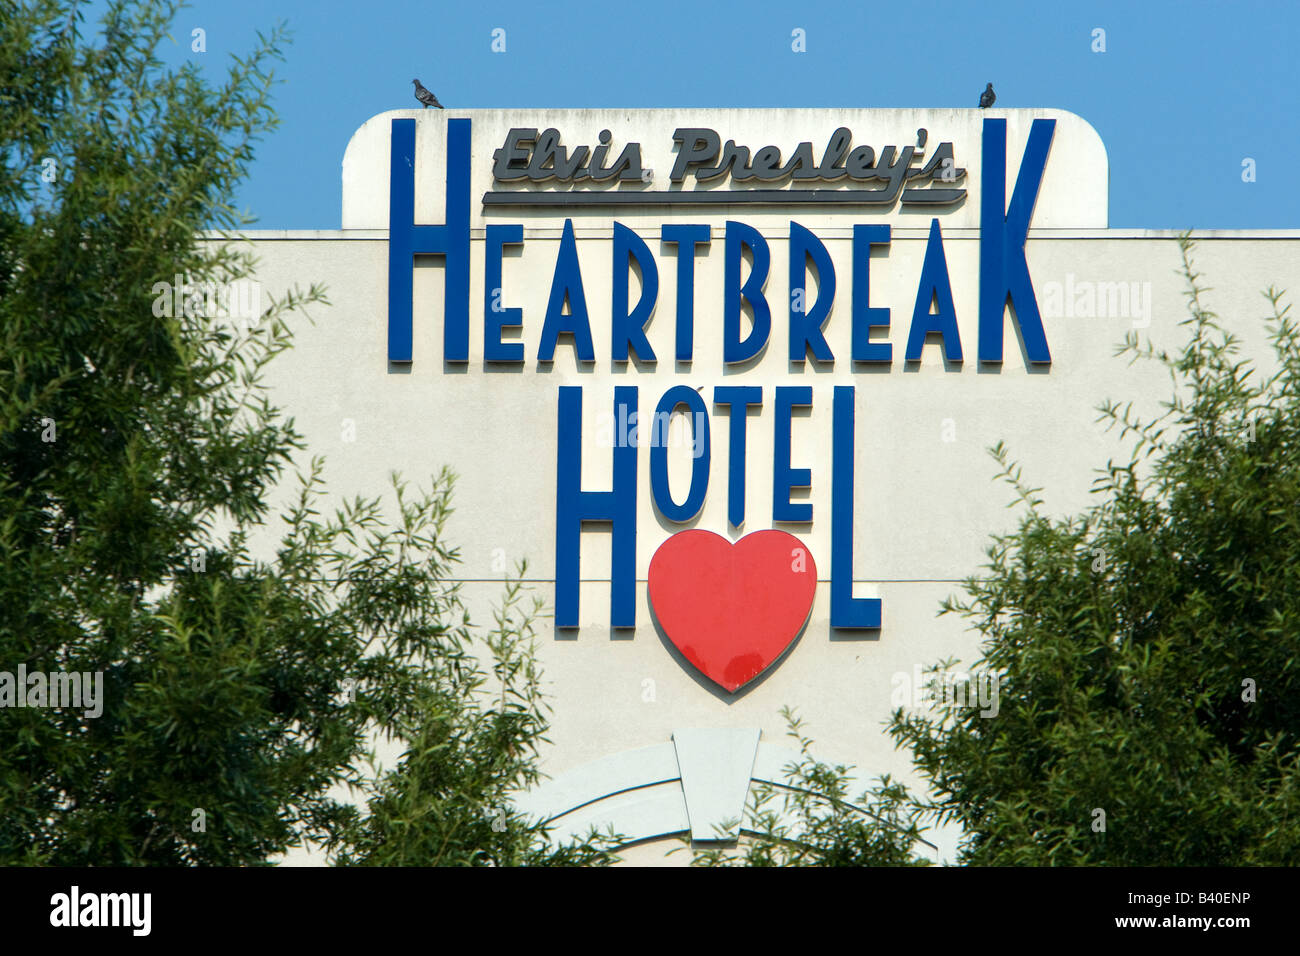 Heartbreak hotel memphis tennessee usa stock photo for Graceland hotel memphis tn